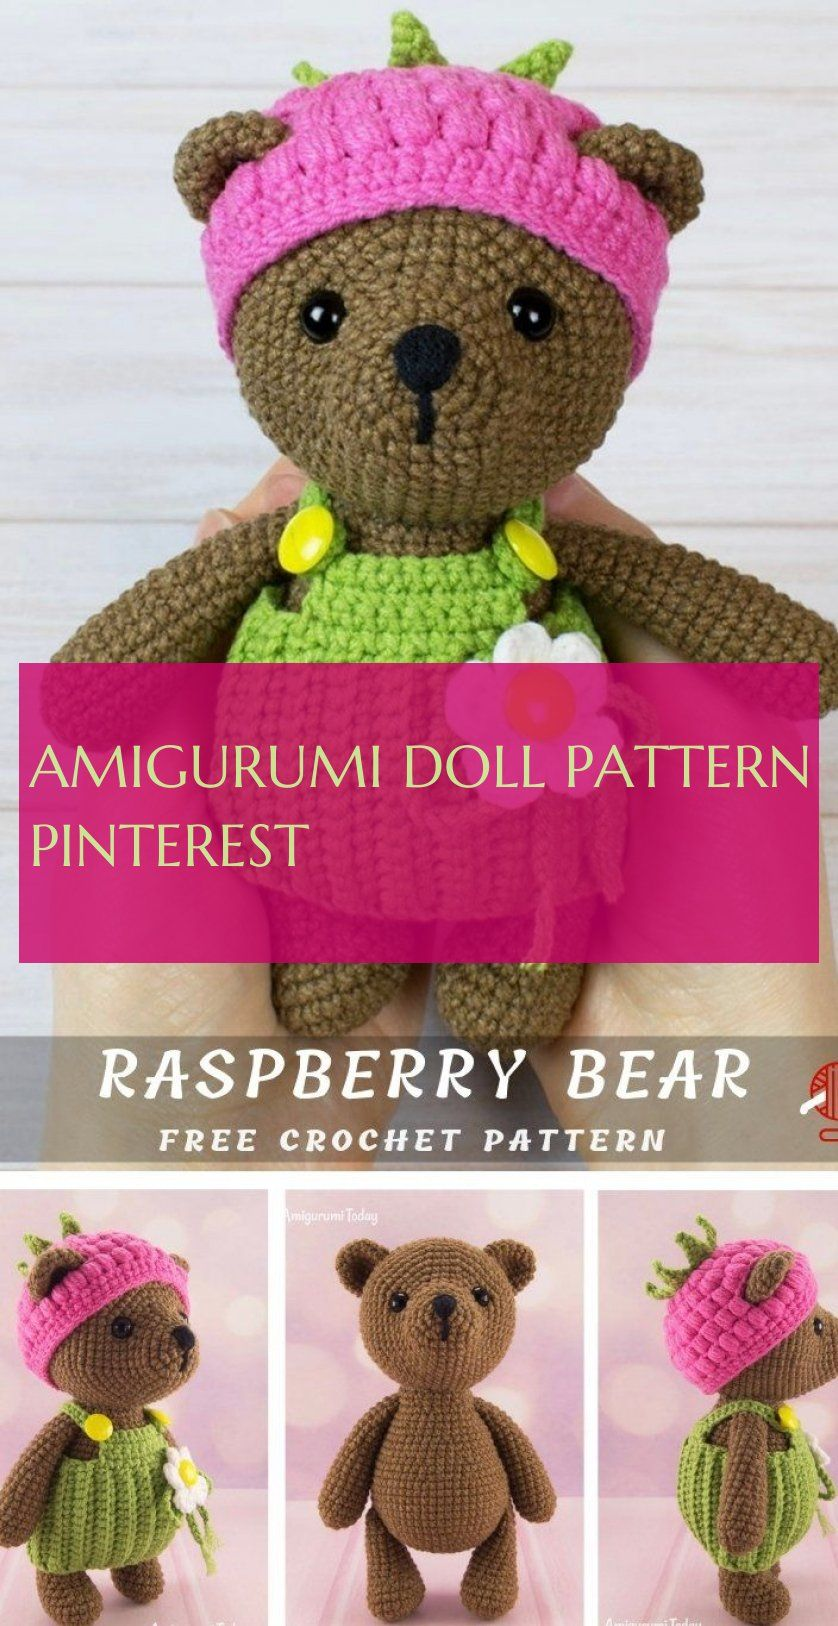 The Most Beautiful Amigurumi Doll Free Crochet Patterns (With ... | 1626x838